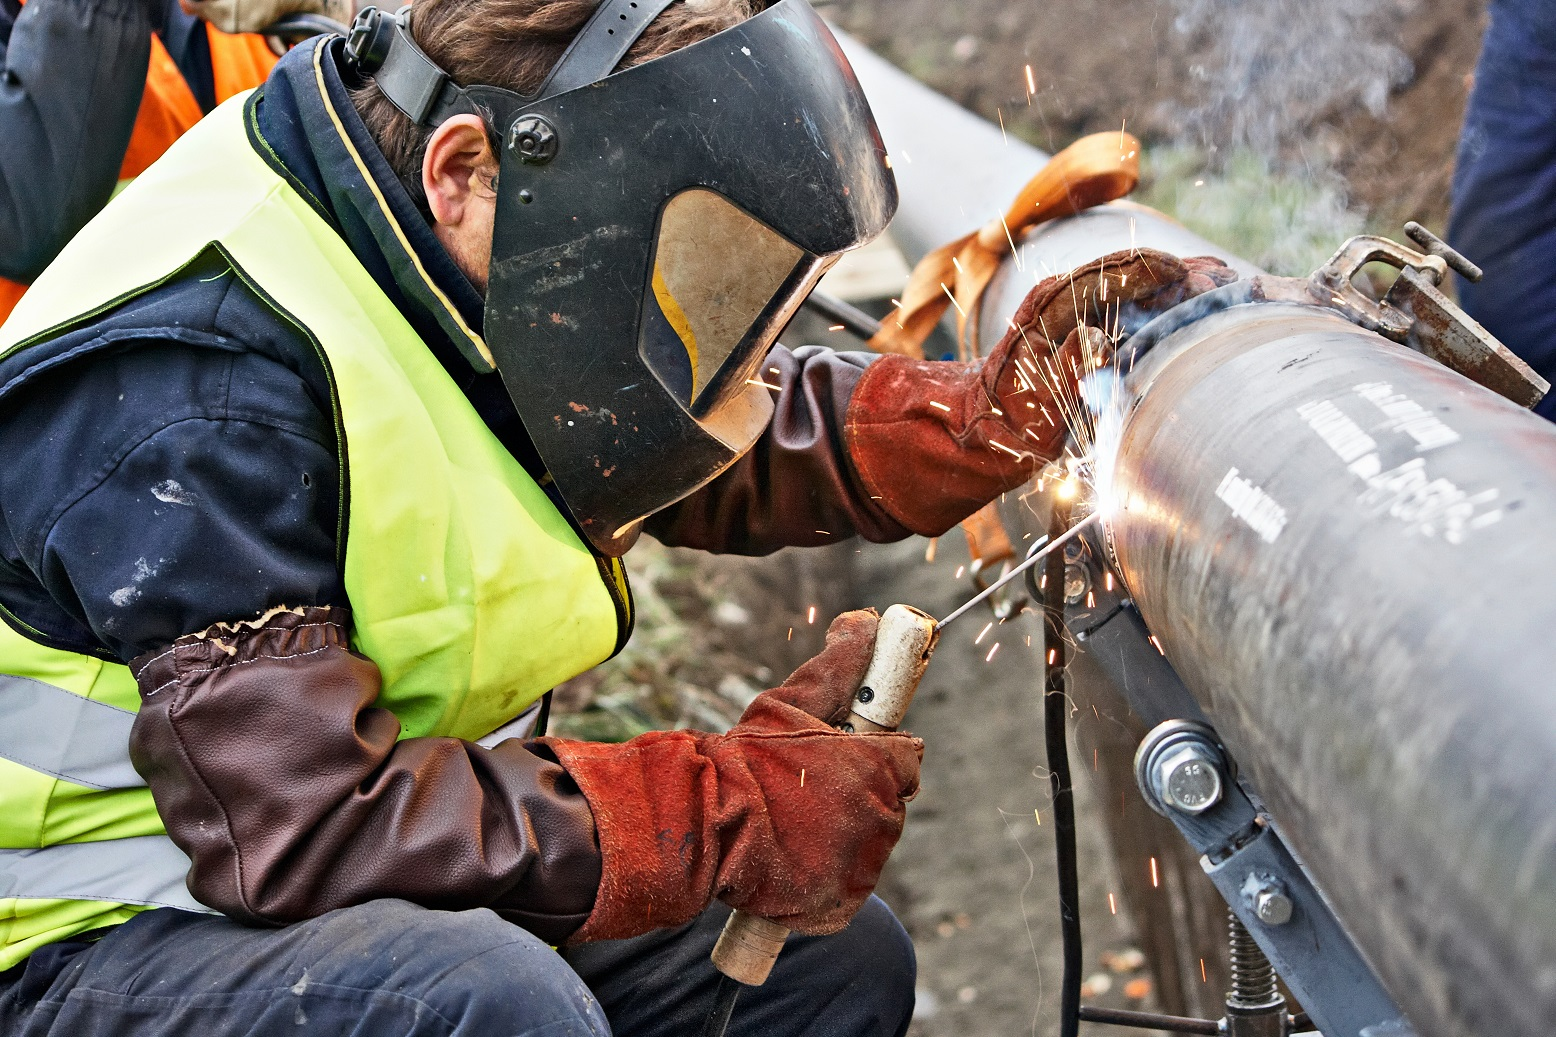 Collection of images of welders (7)_result_result